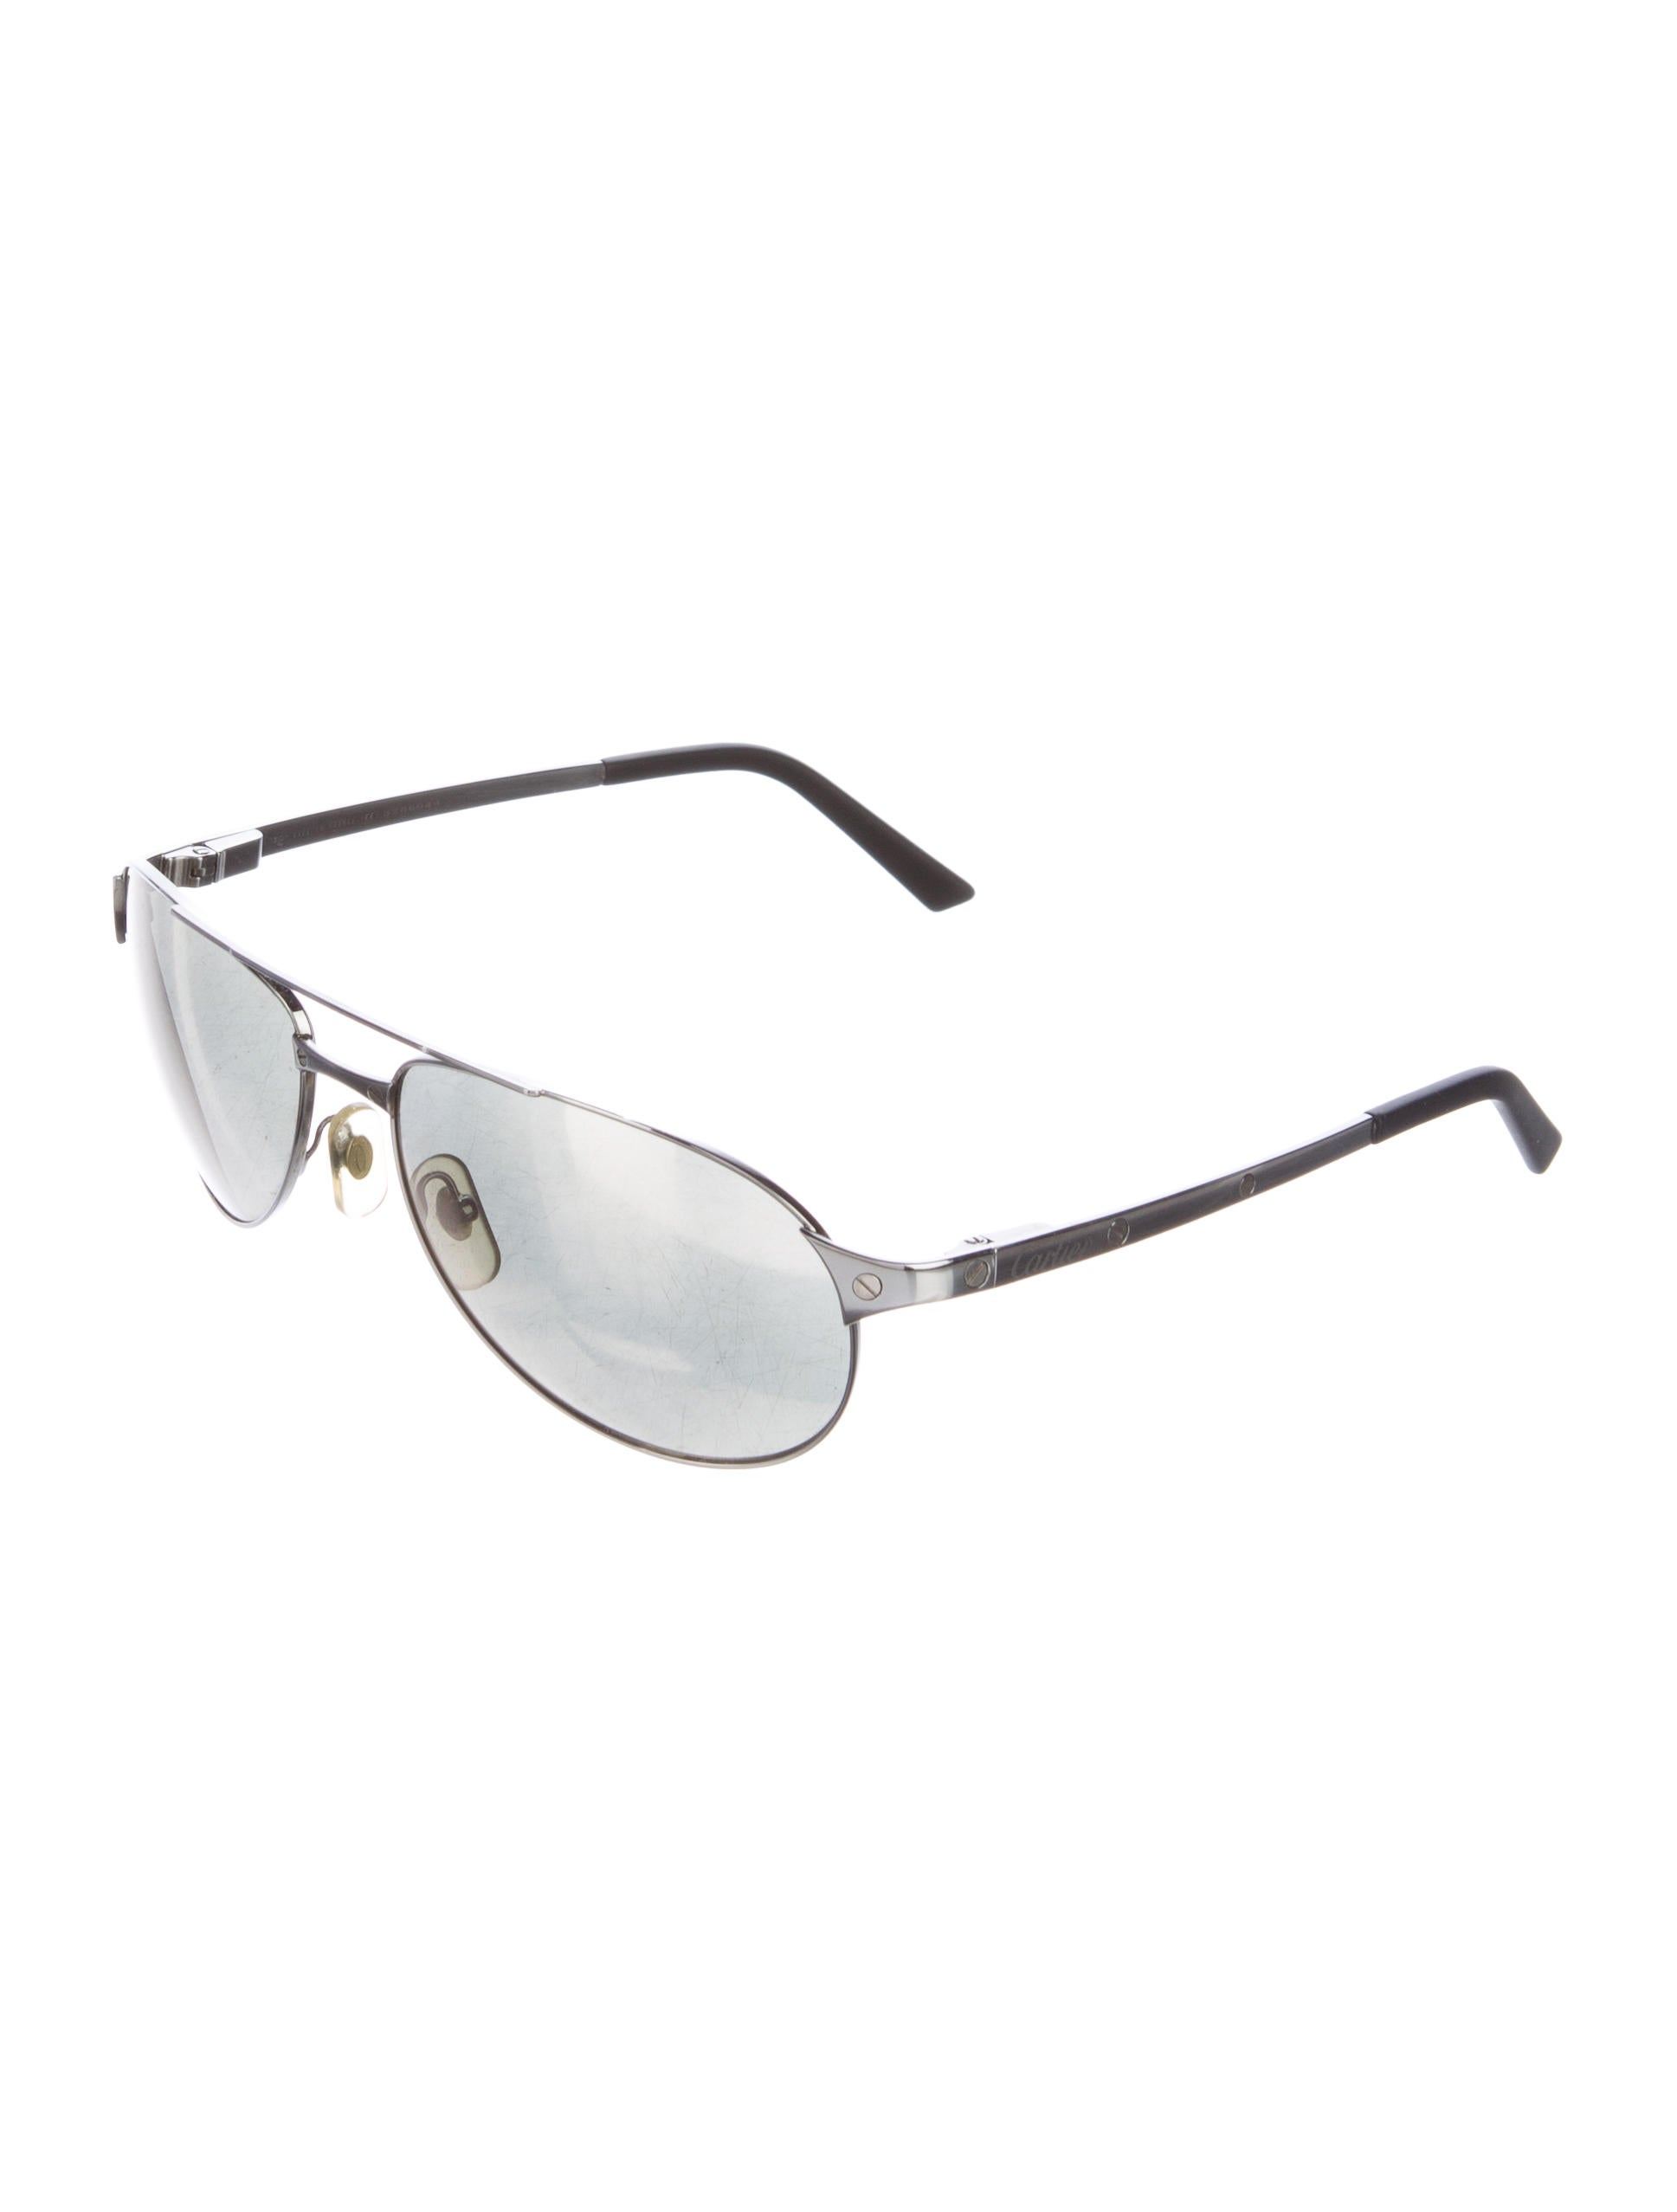 68420d4f1e5 Cartier Aviator Sunglasses Santos Dumont Official Site